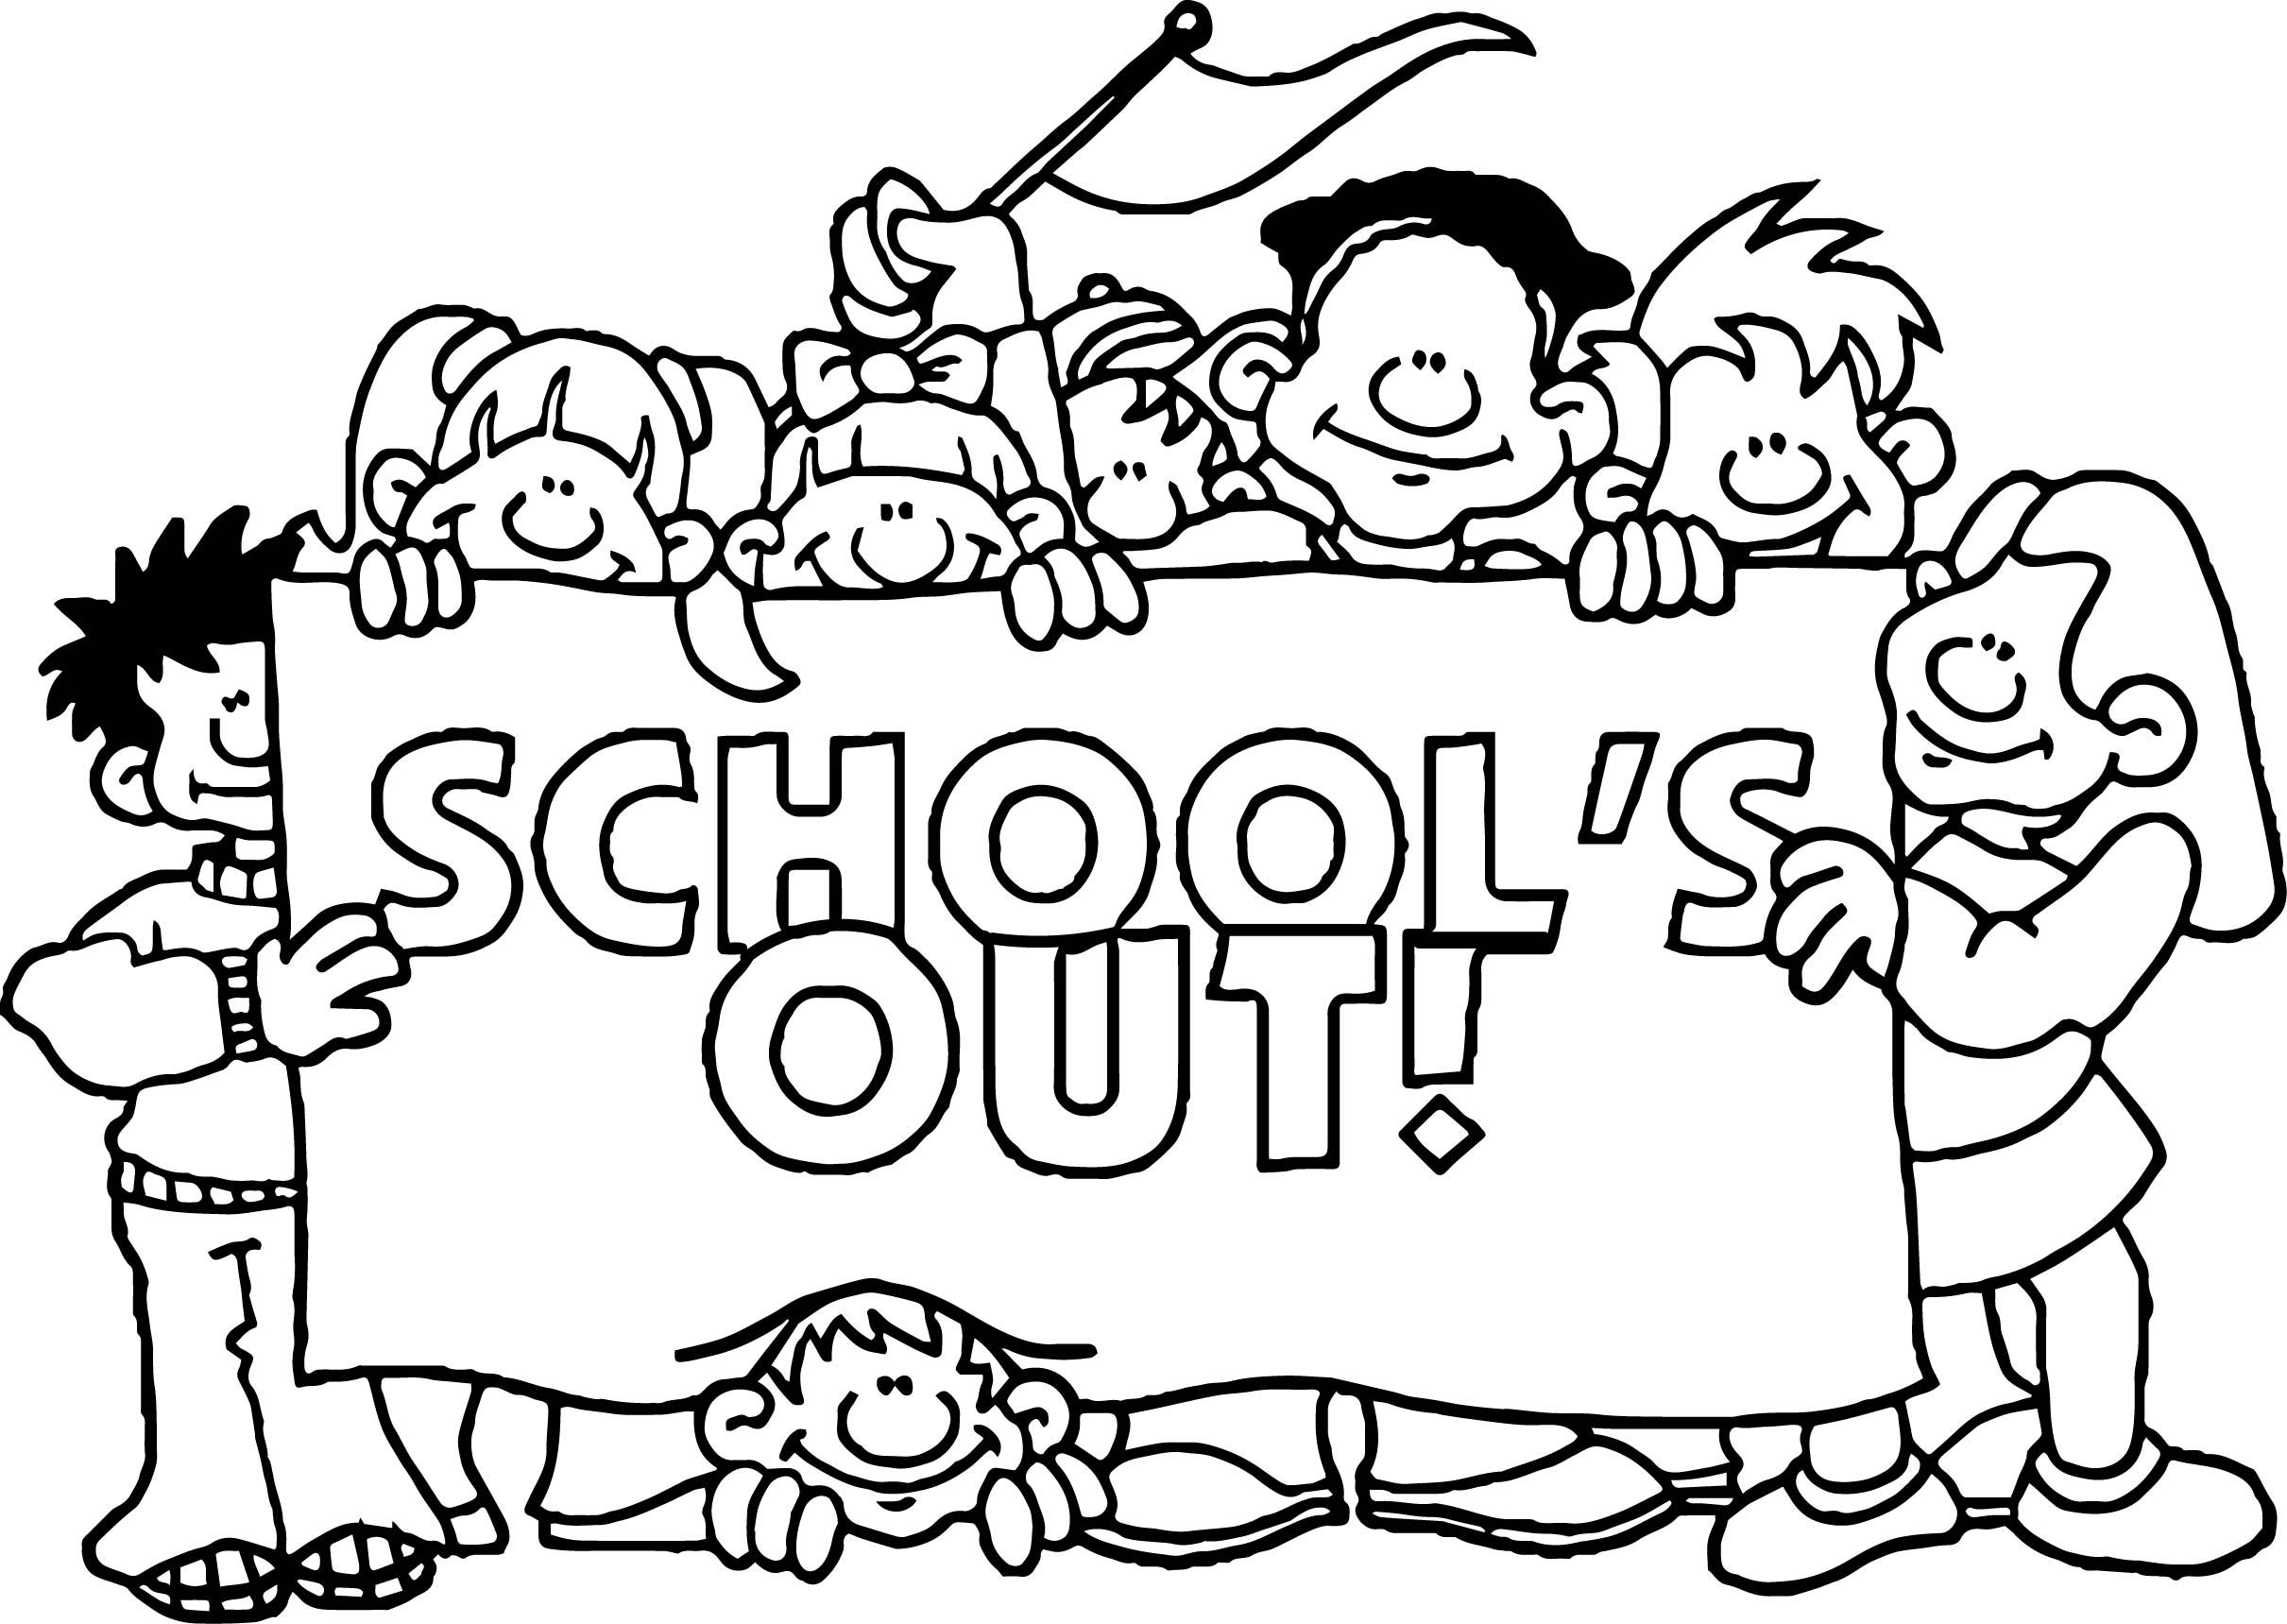 awesome Summer Schools Out Coloring Page   Summer coloring ...